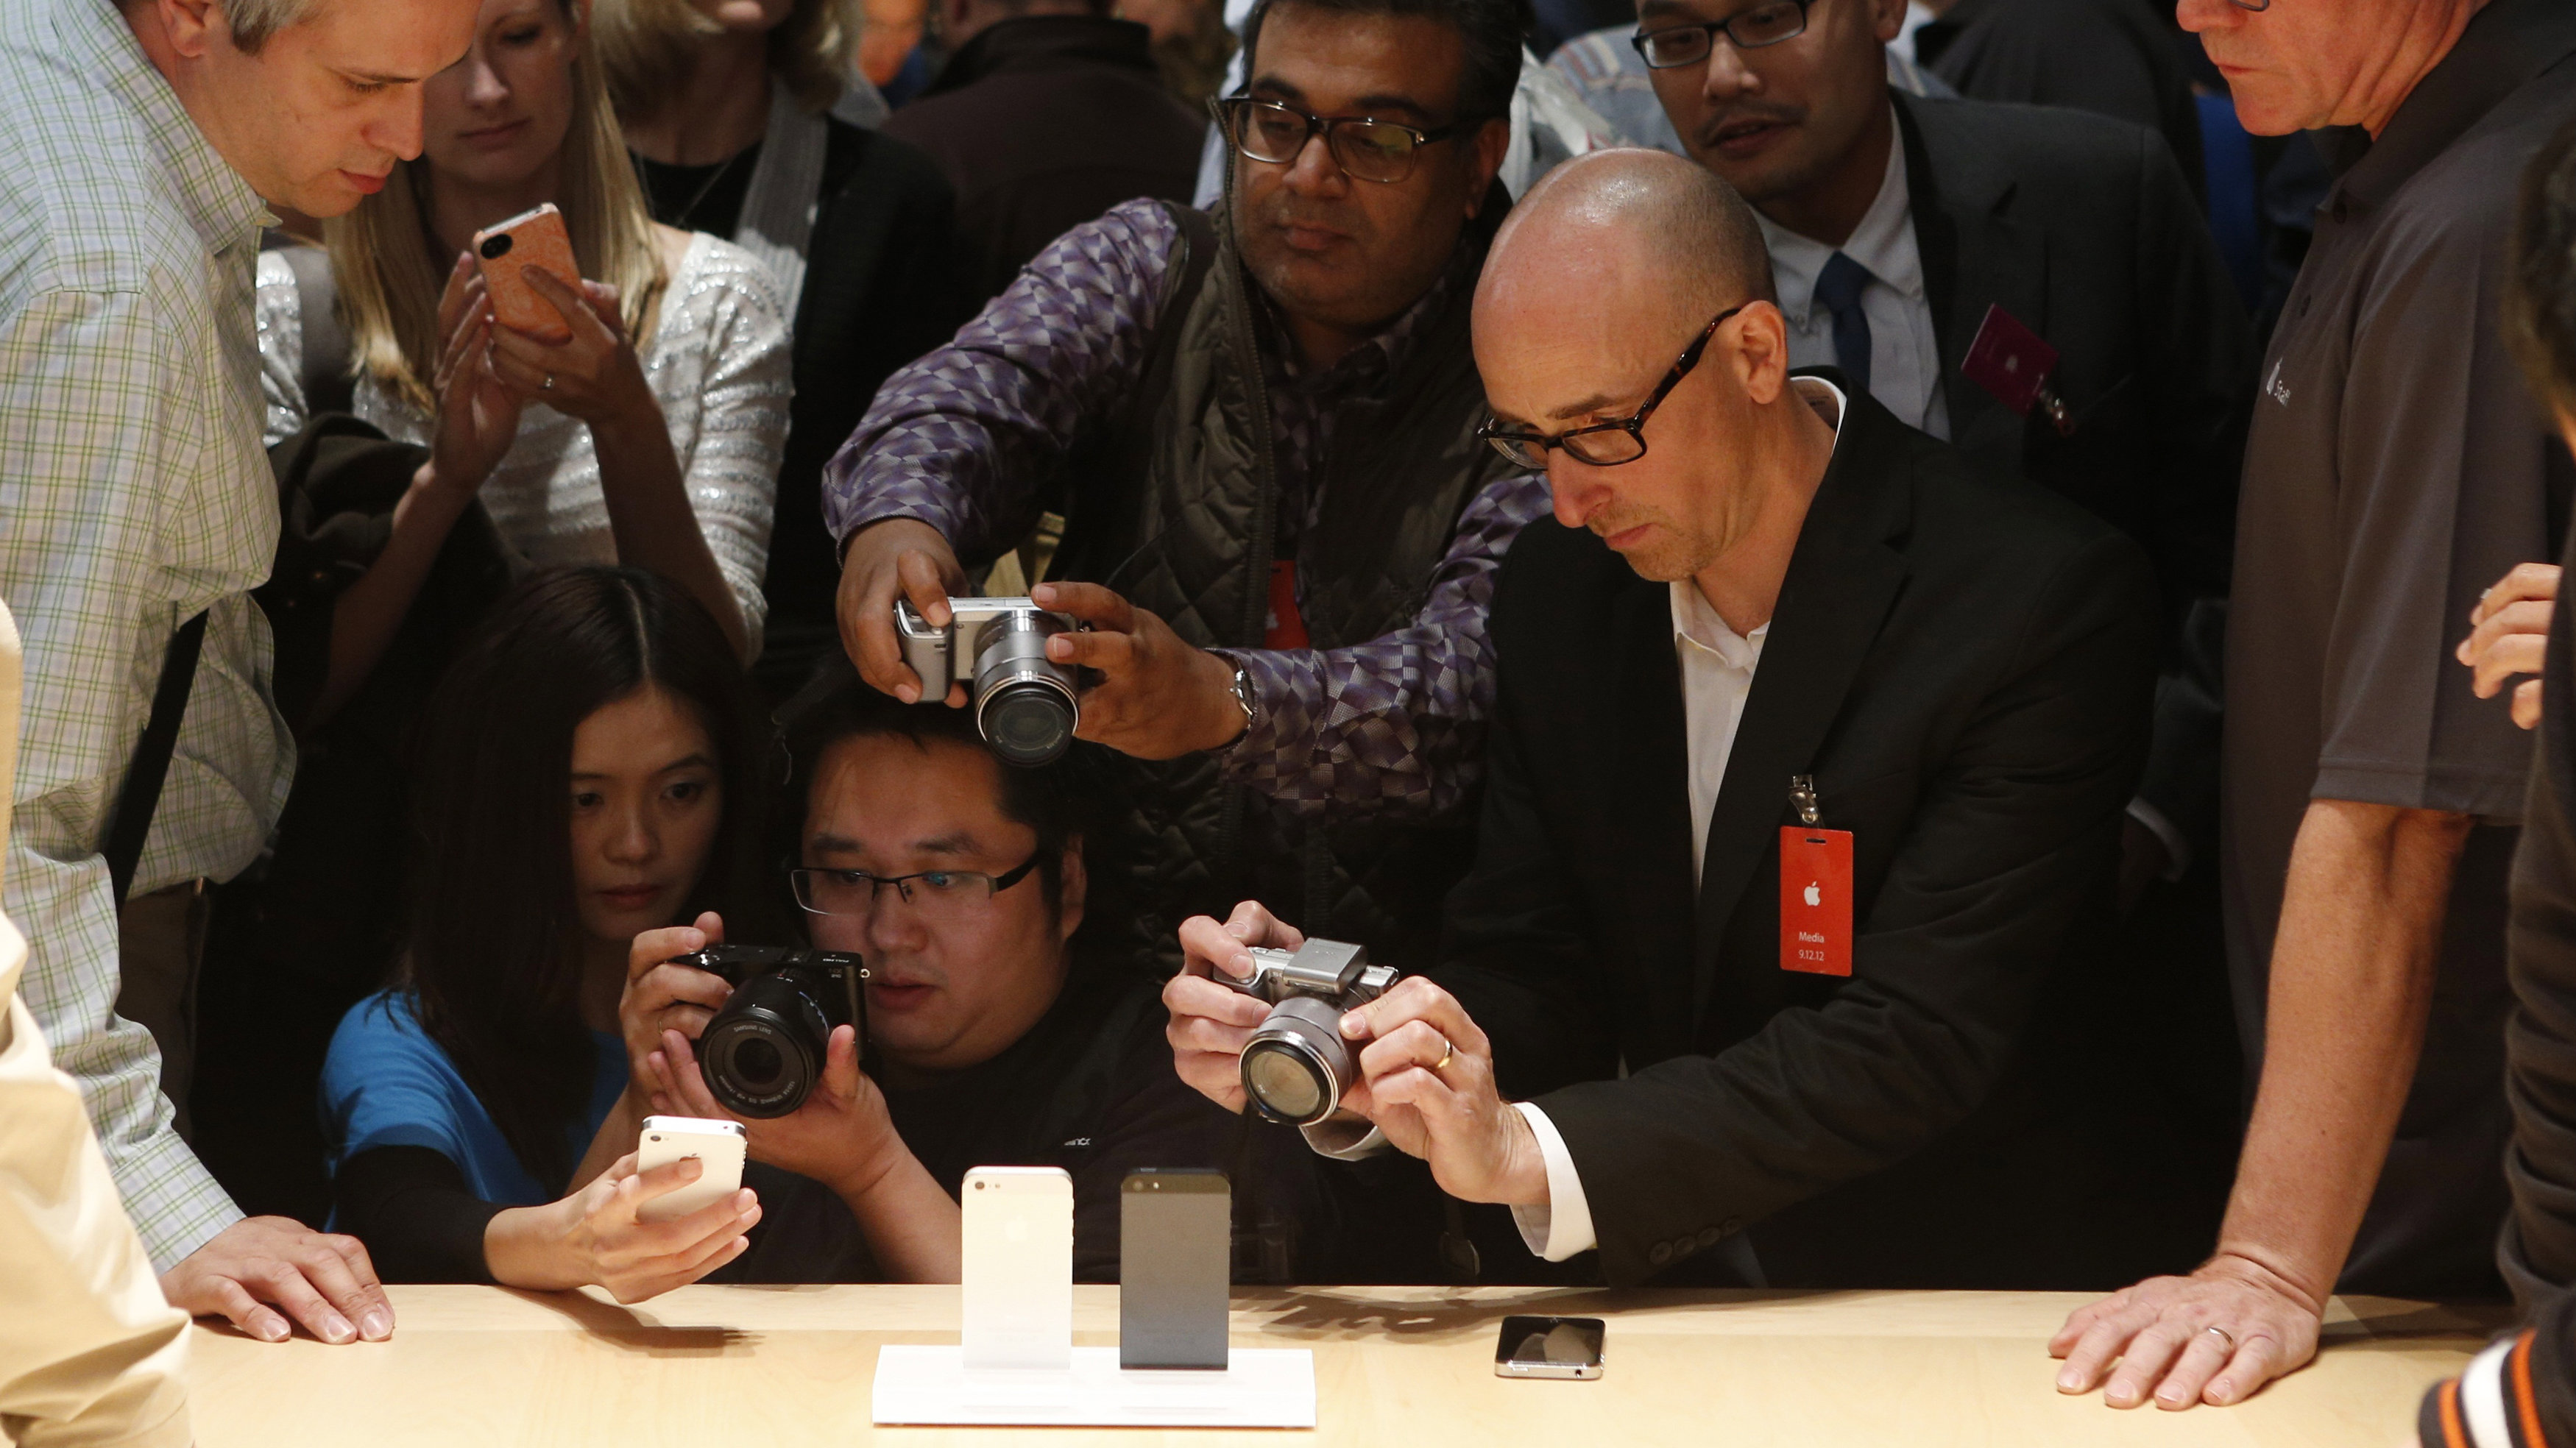 Members of the media photograph the iPhone 5 after its introduction during Apple Inc.'s iPhone media event in San Francisco, California September 12, 2012.. REUTERS/Beck Diefenbach